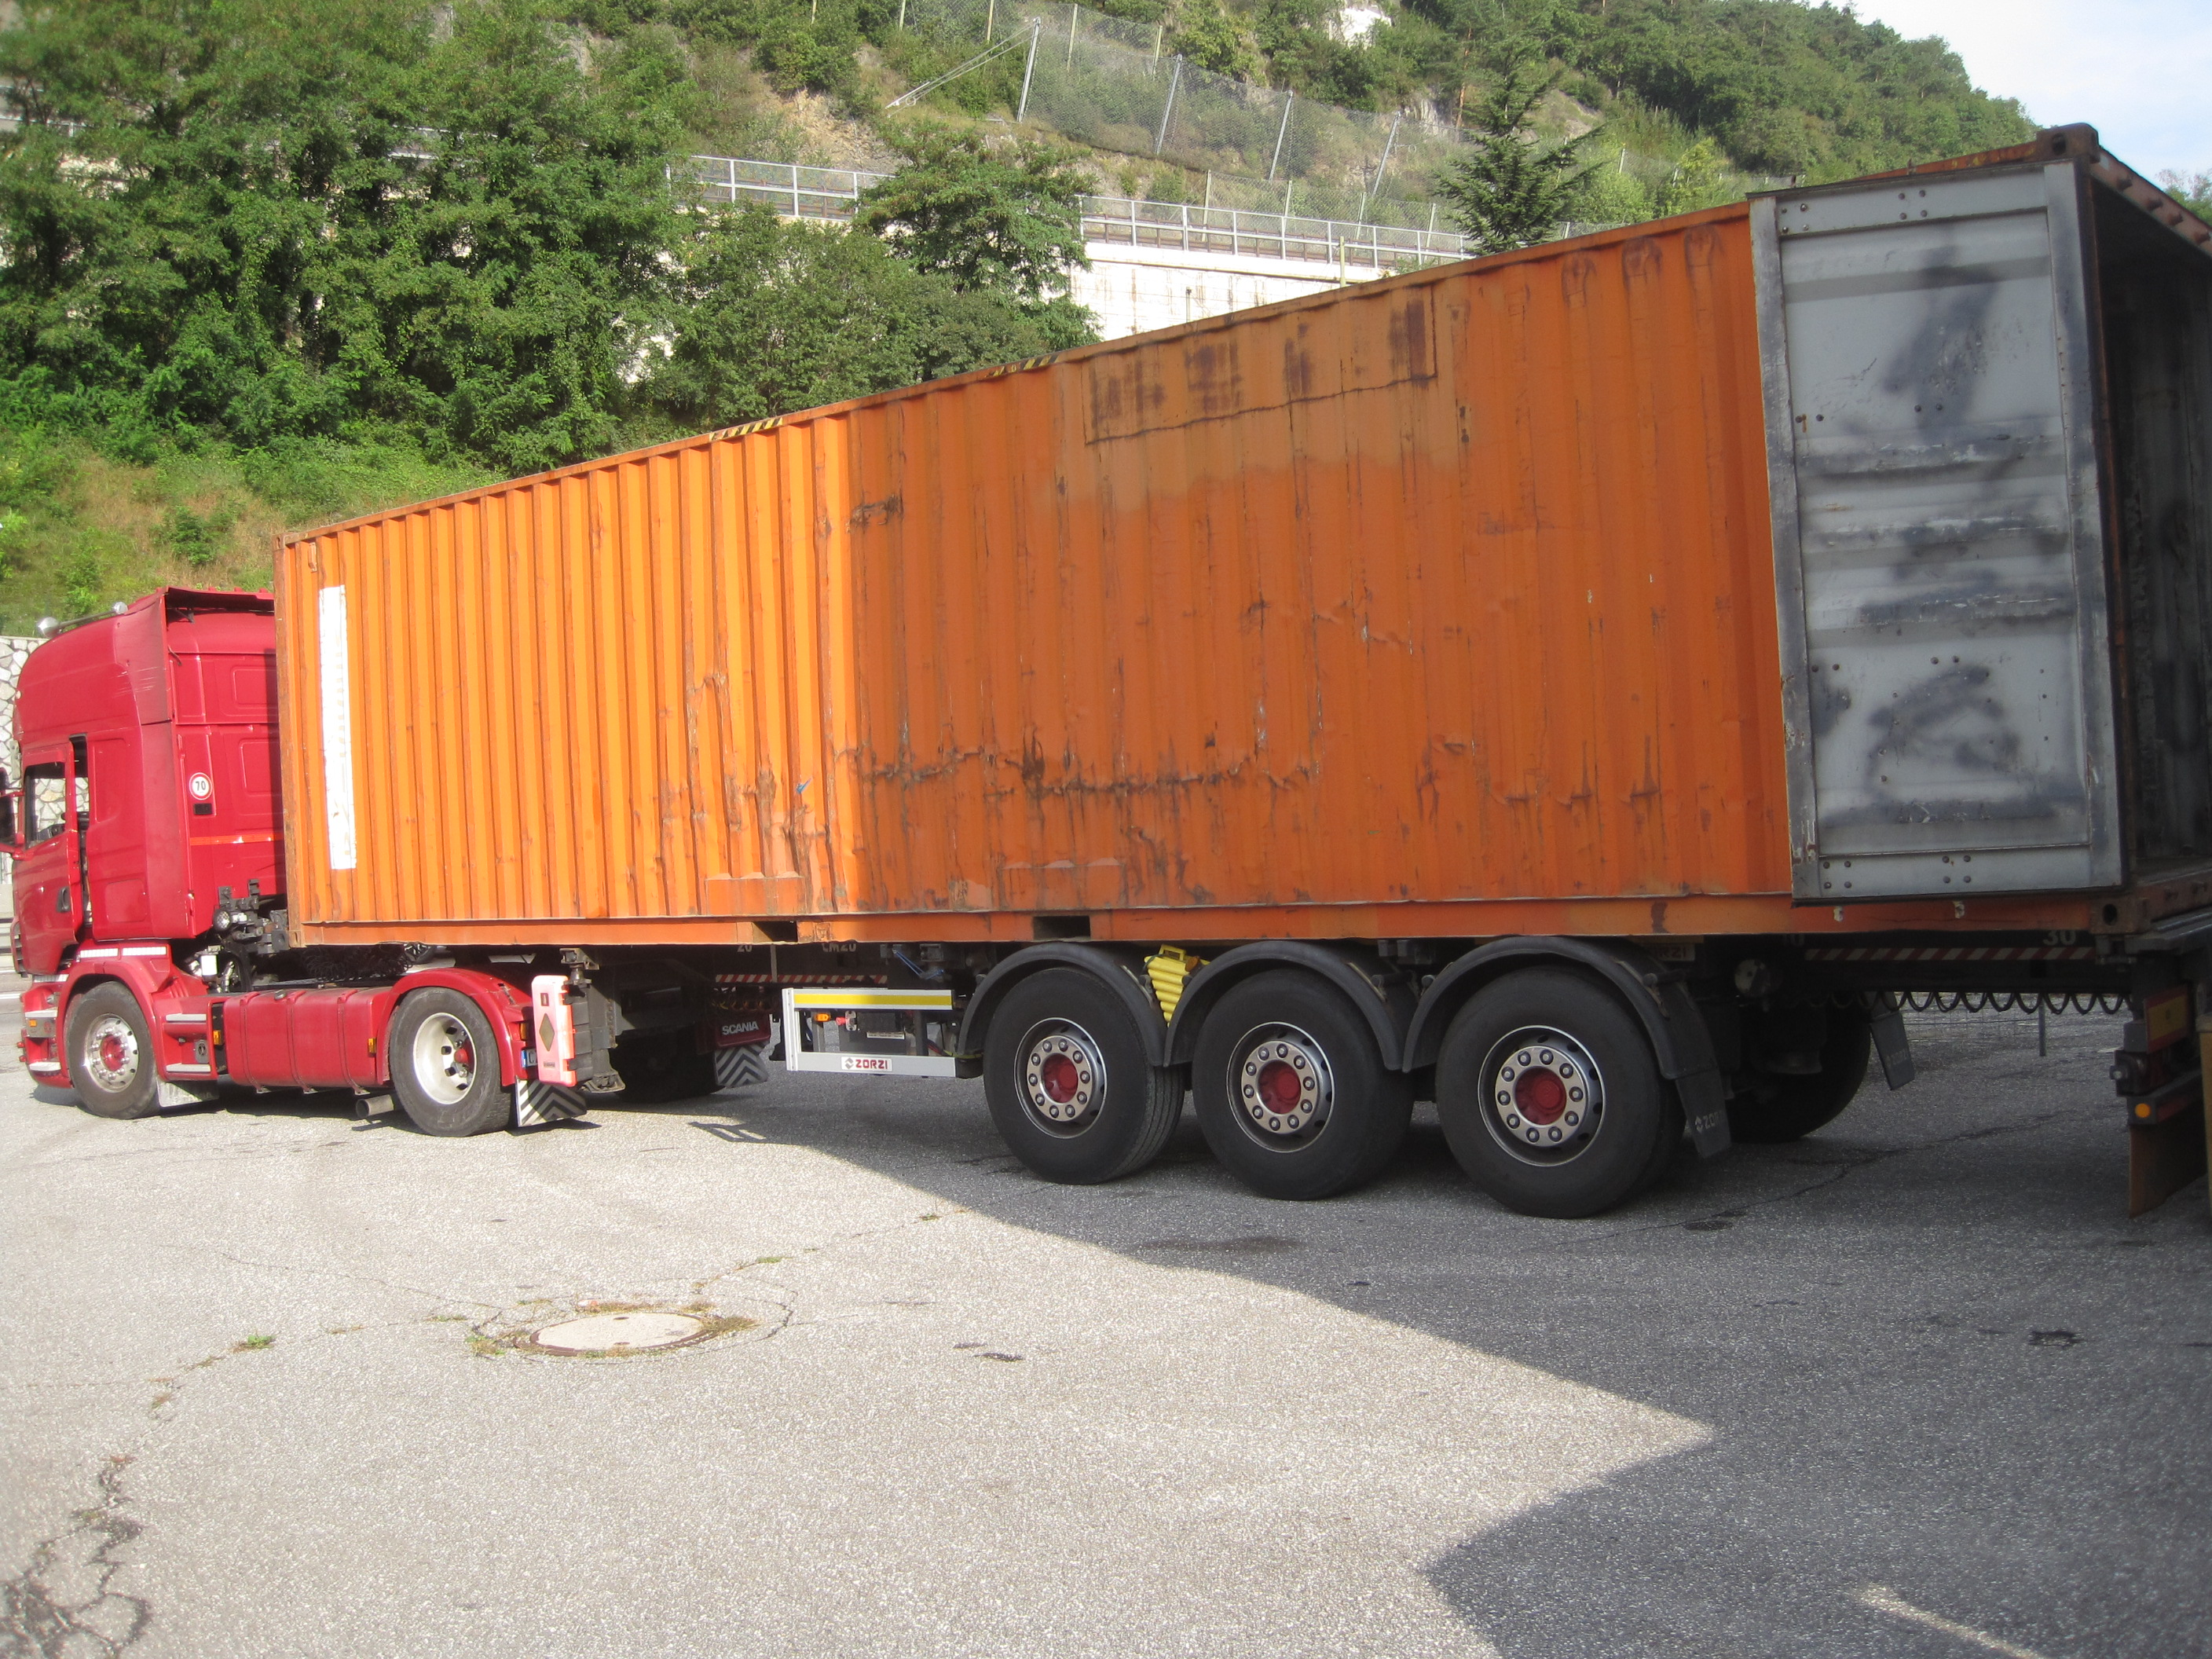 container-22-9-2020-IMG_2632